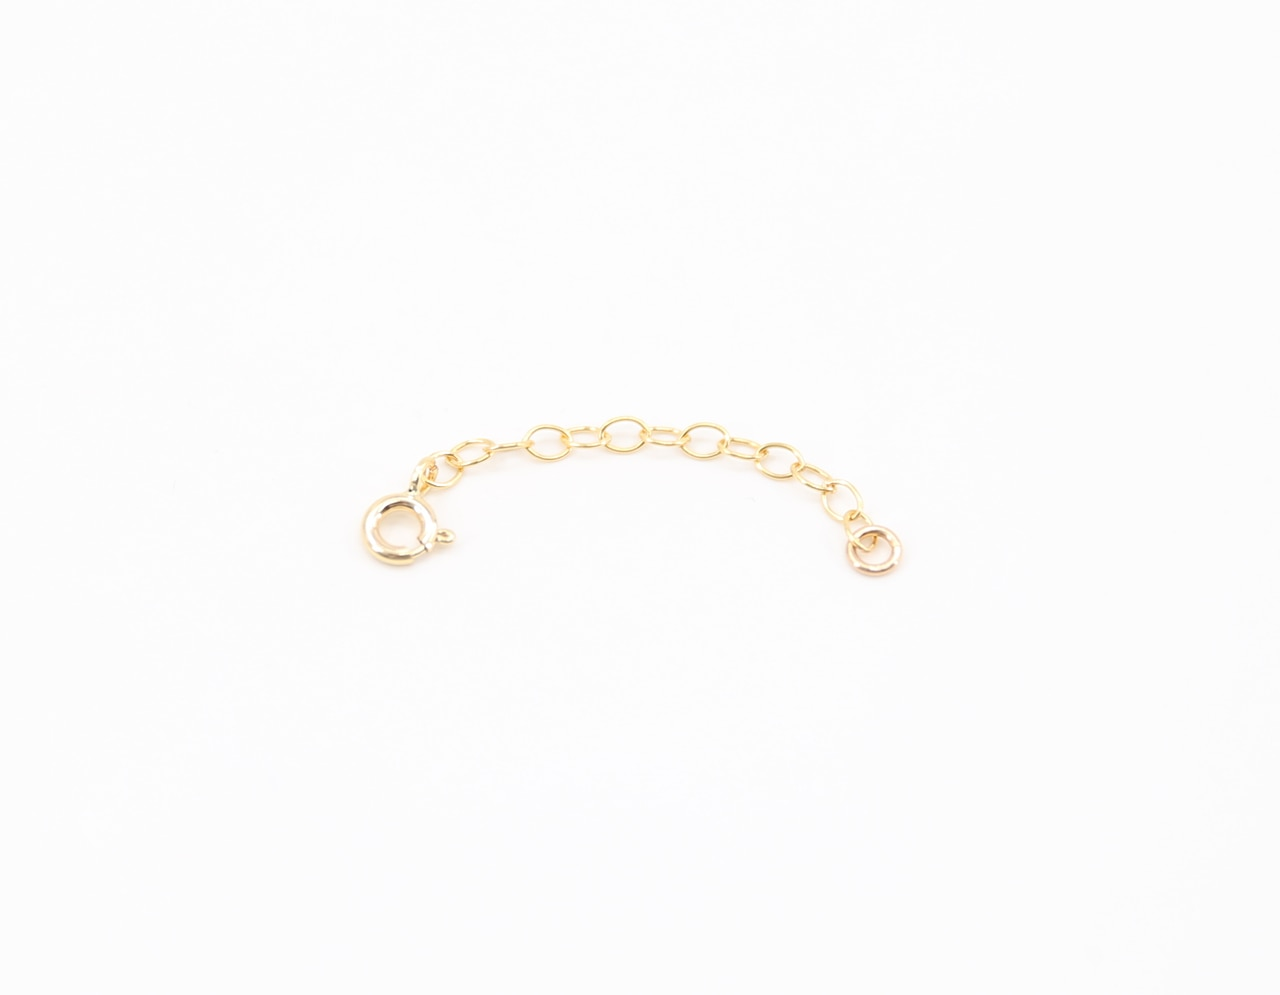 Gold Filled Detachable Chain Extender - MBM